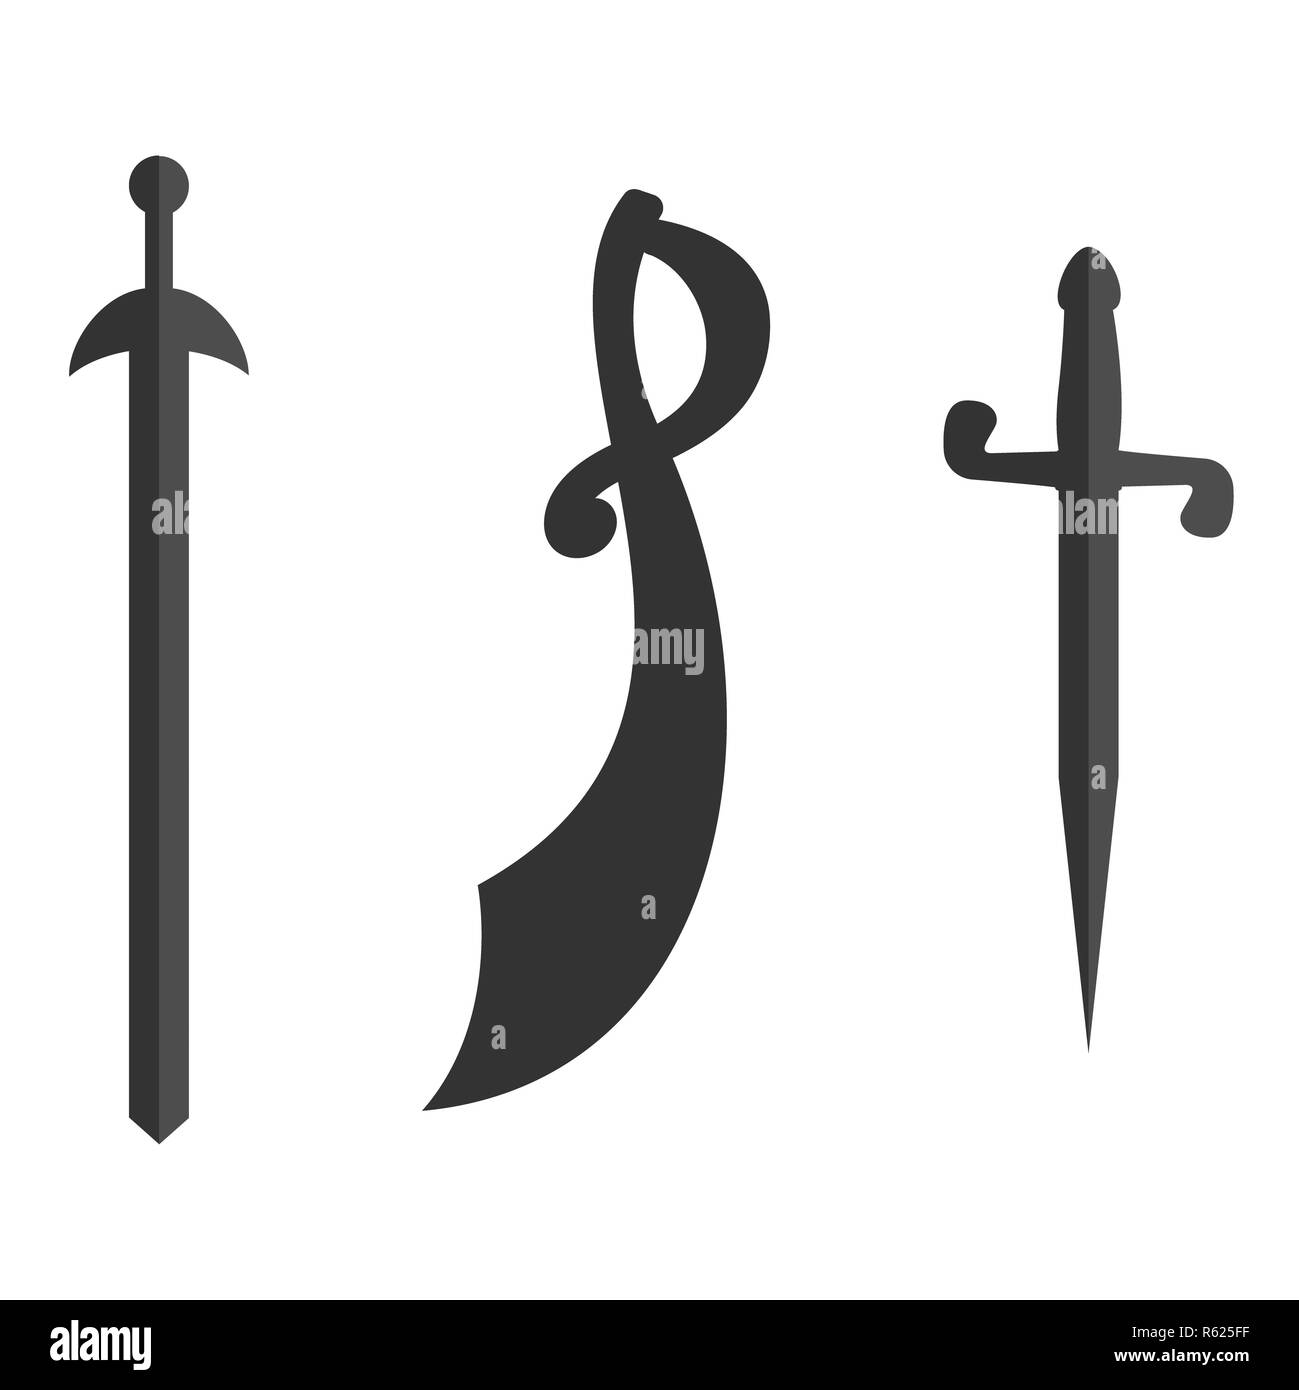 Set of historical swords saber silhouettes. Illustration with vector slashing weapons. Cavalry sword, sabre on a white background. - Stock Image